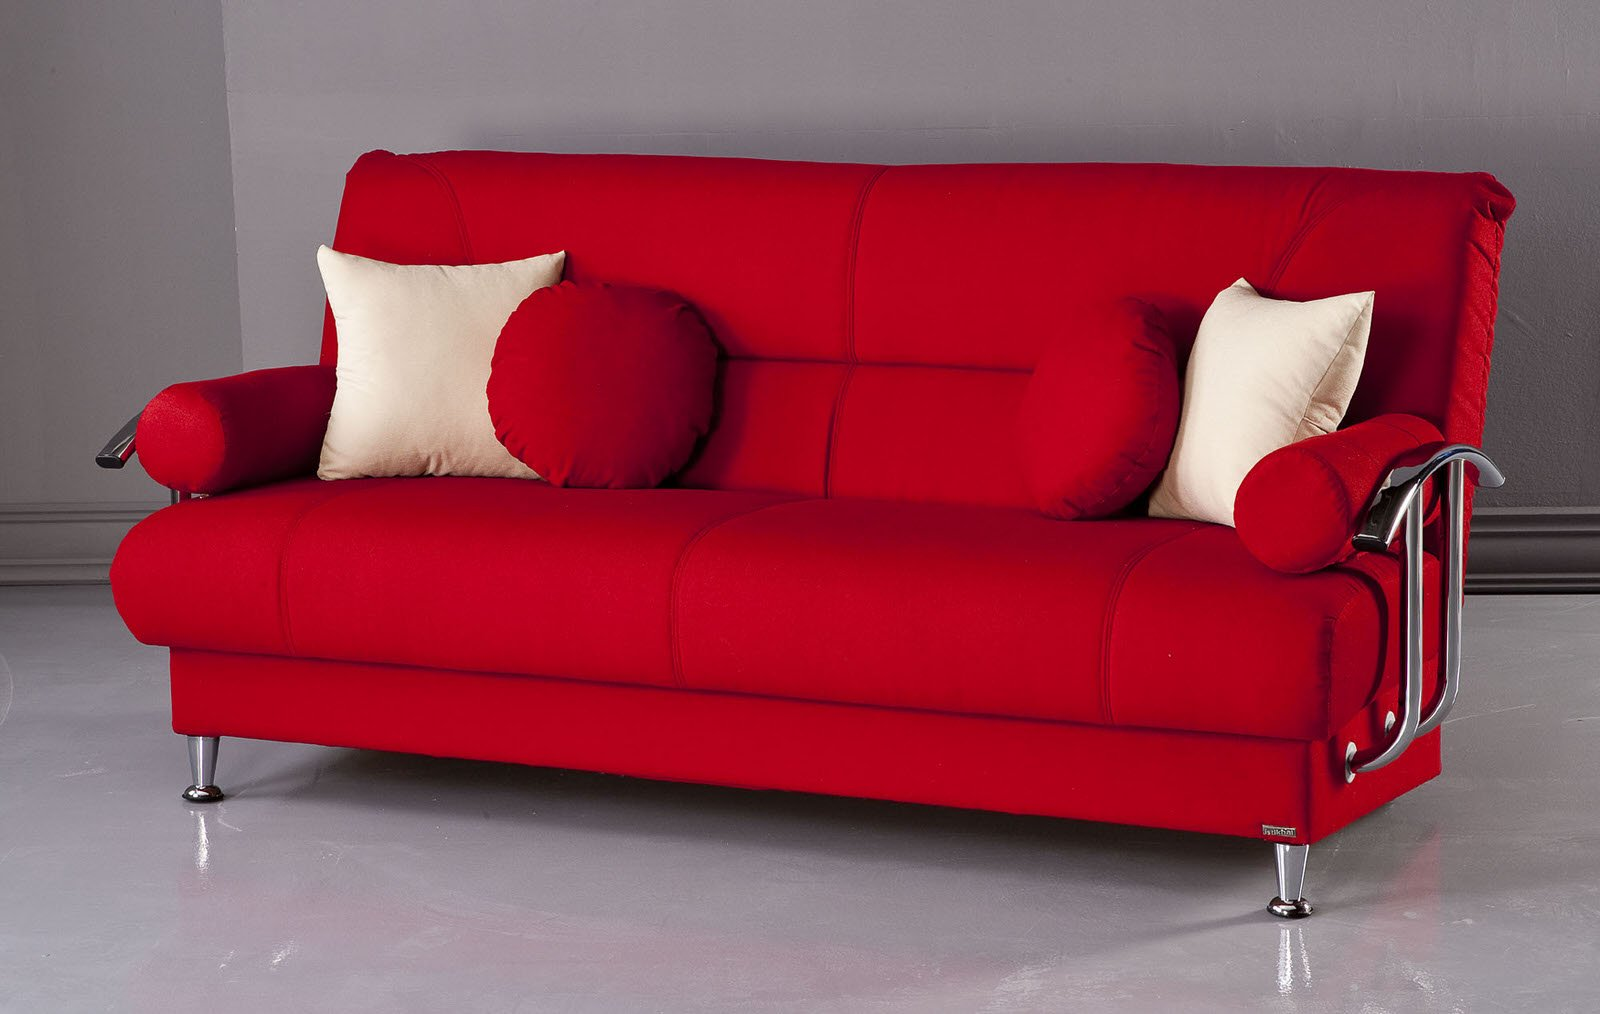 Best tetris red convertible sofa bed by sunset Couch and bed